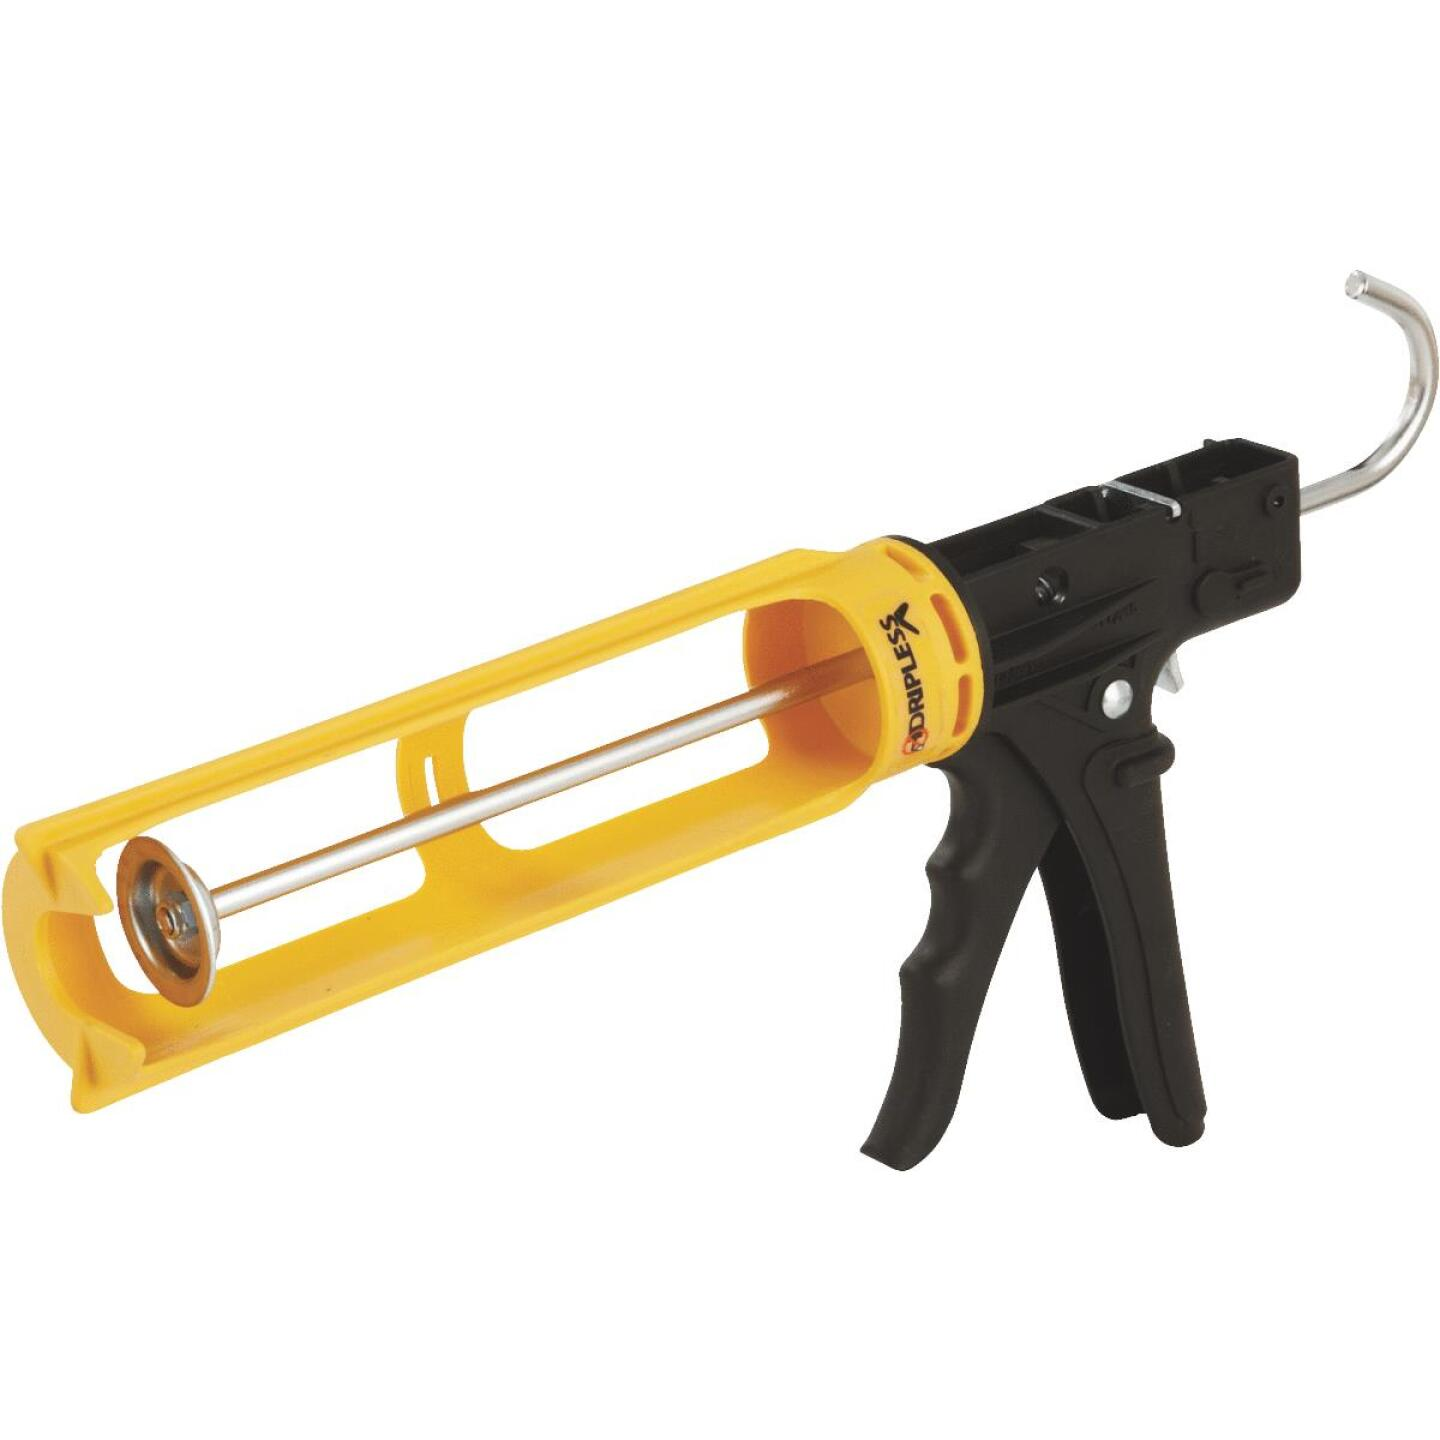 Dripless ErgoTech Series 10 Oz. 18:1 Thrust Industrial Cradle Composite Caulk Gun Image 2